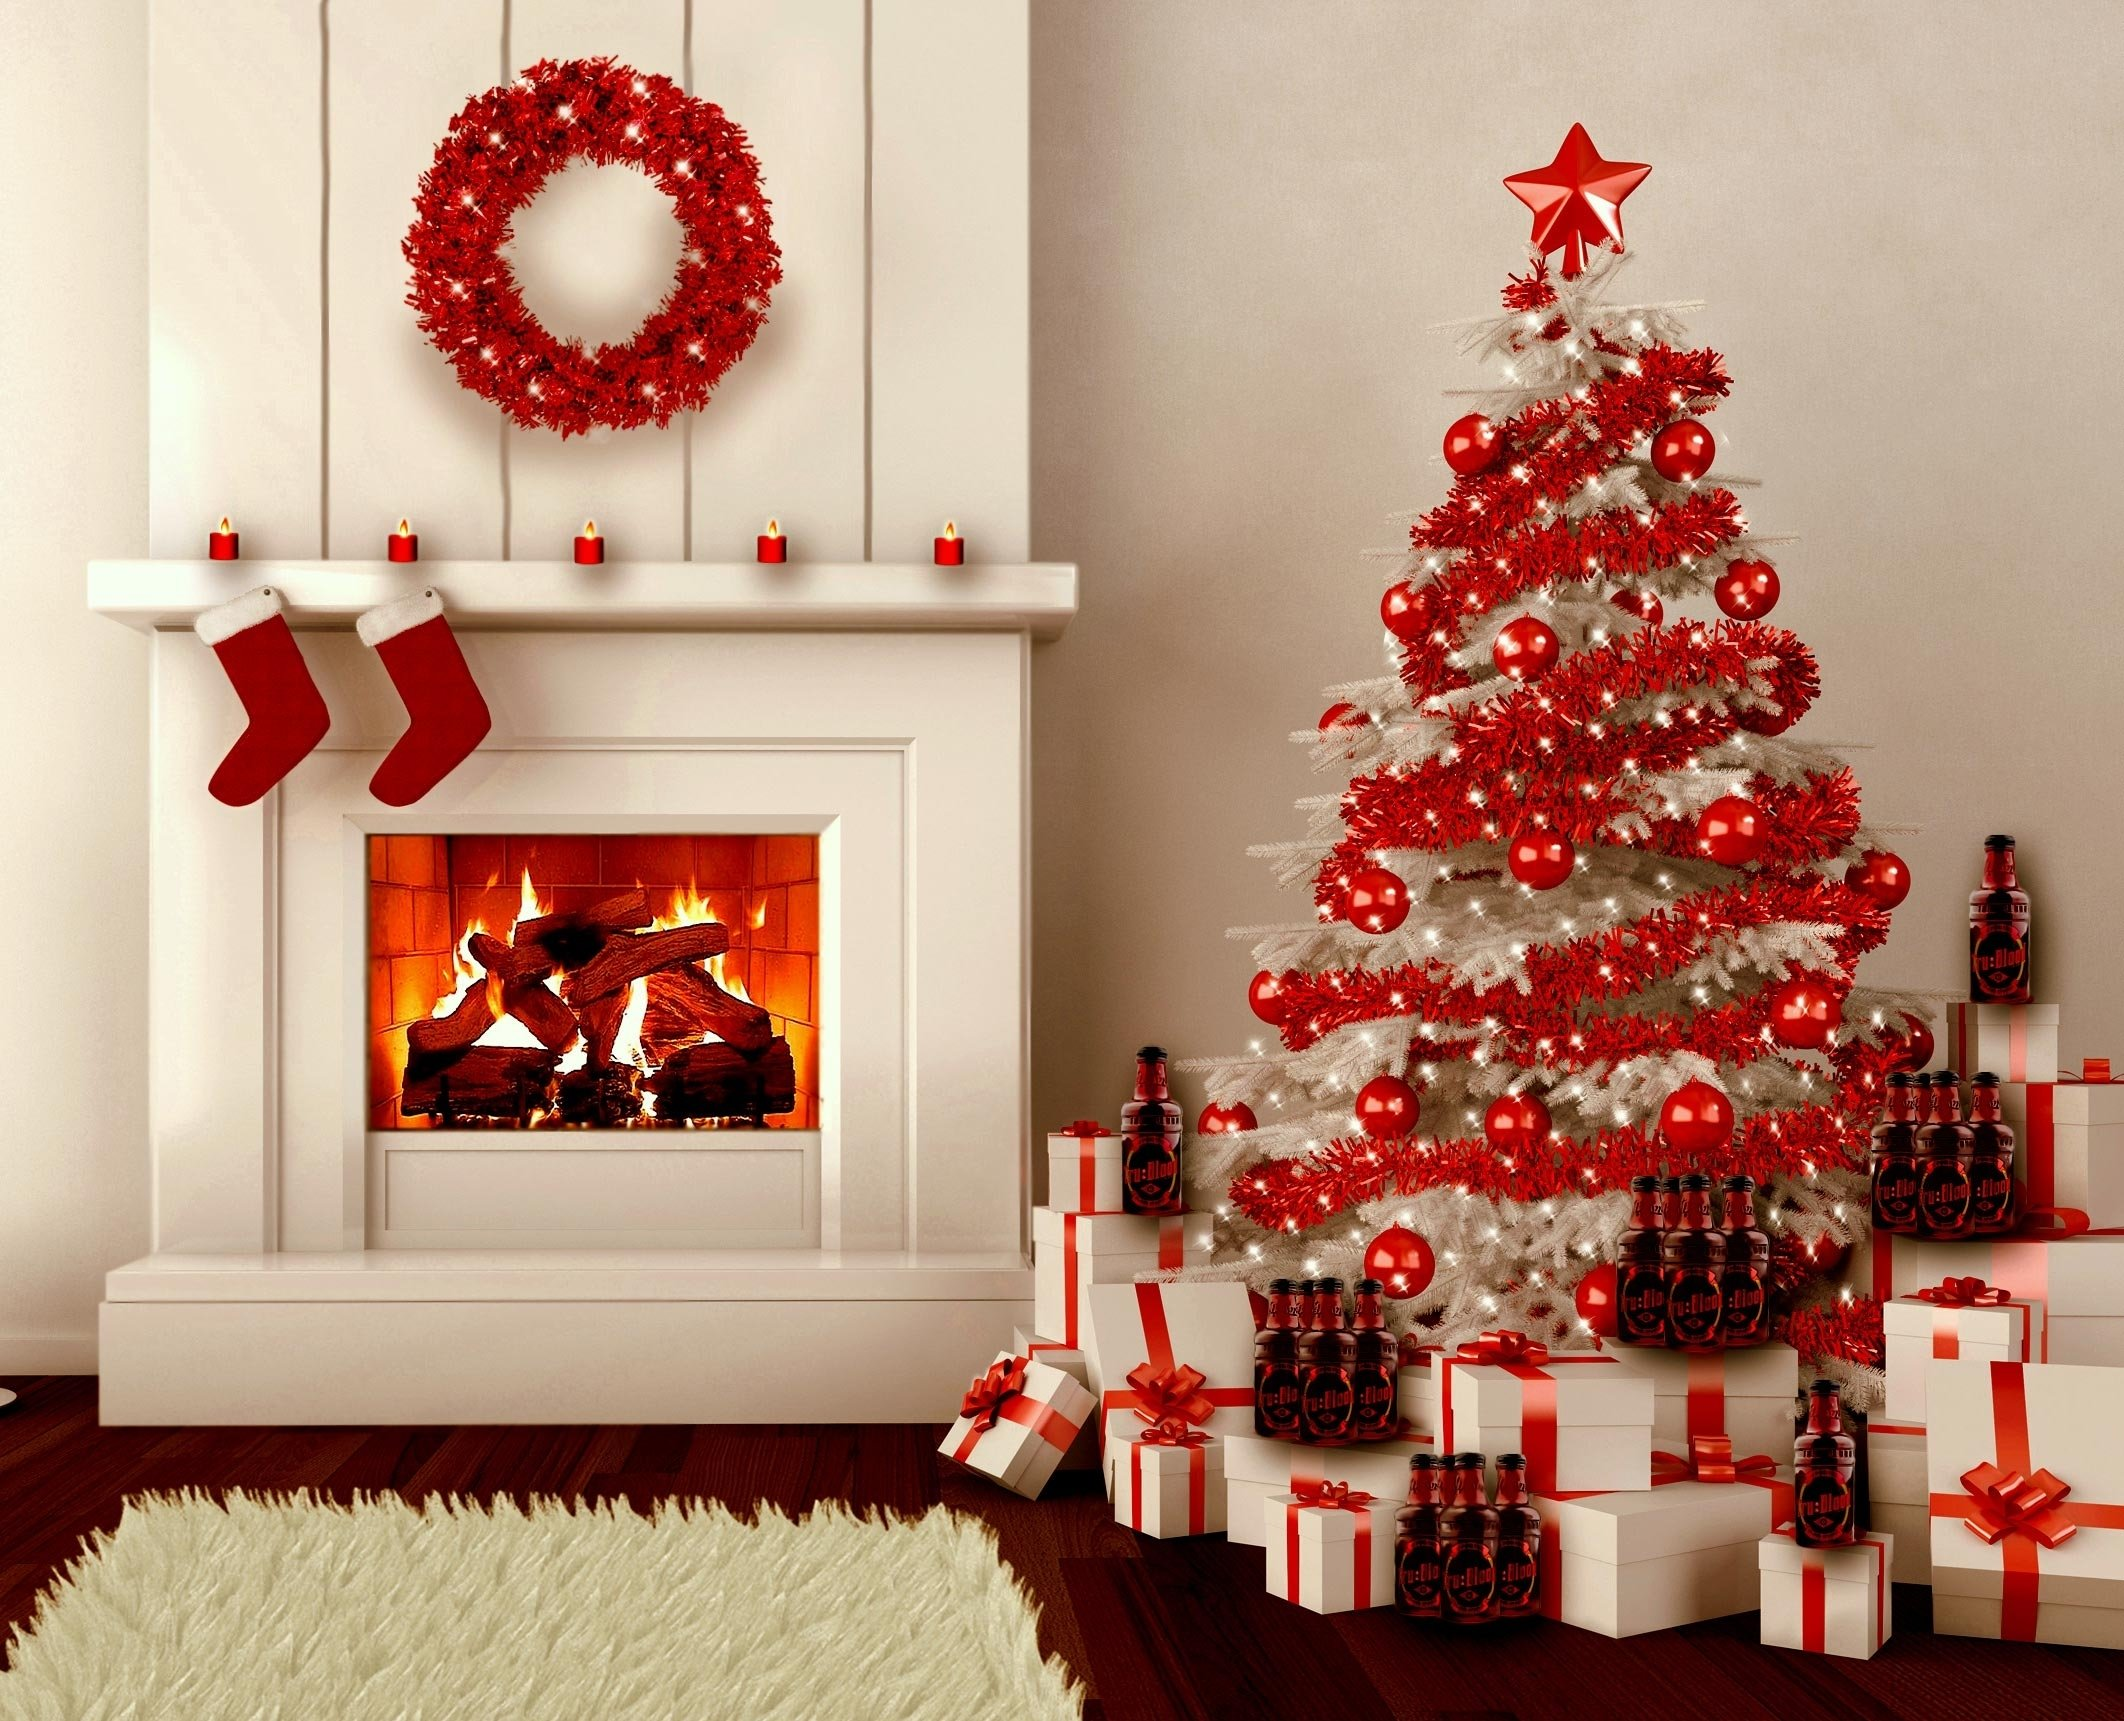 10 Most Popular Christmas Decorating Ideas For 2013 outdoor christmas decorating ideas span new tree decorations for 1